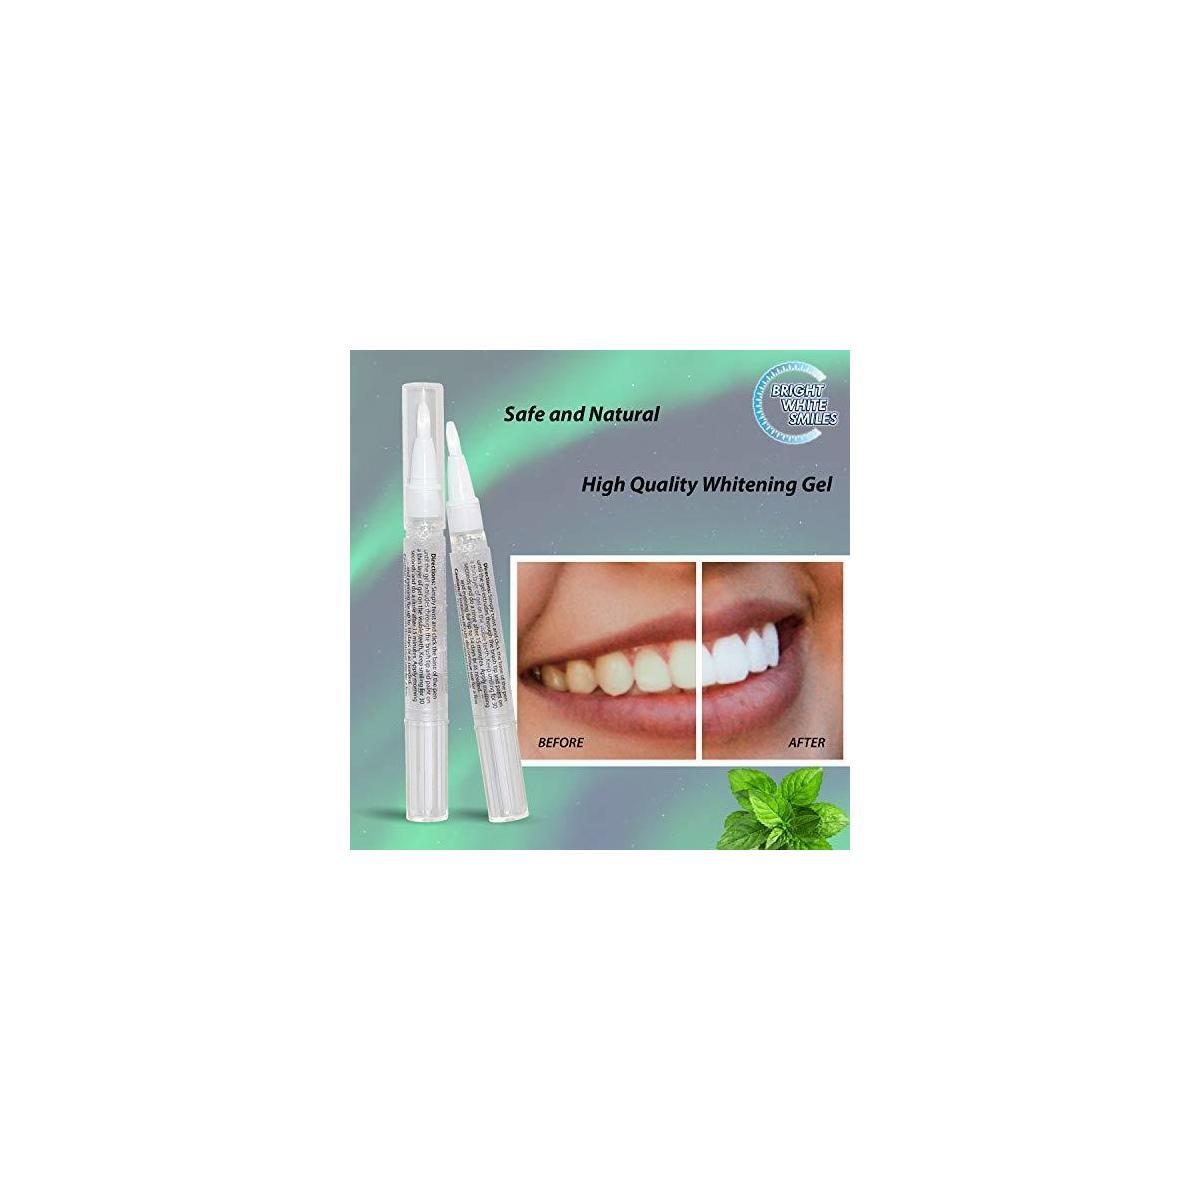 Bright White Smiles Teeth Whitening Pen, 35% Carbamide Peroxide, Manufactured in USA, 2cc Whitener Kit, Storage Tube Included